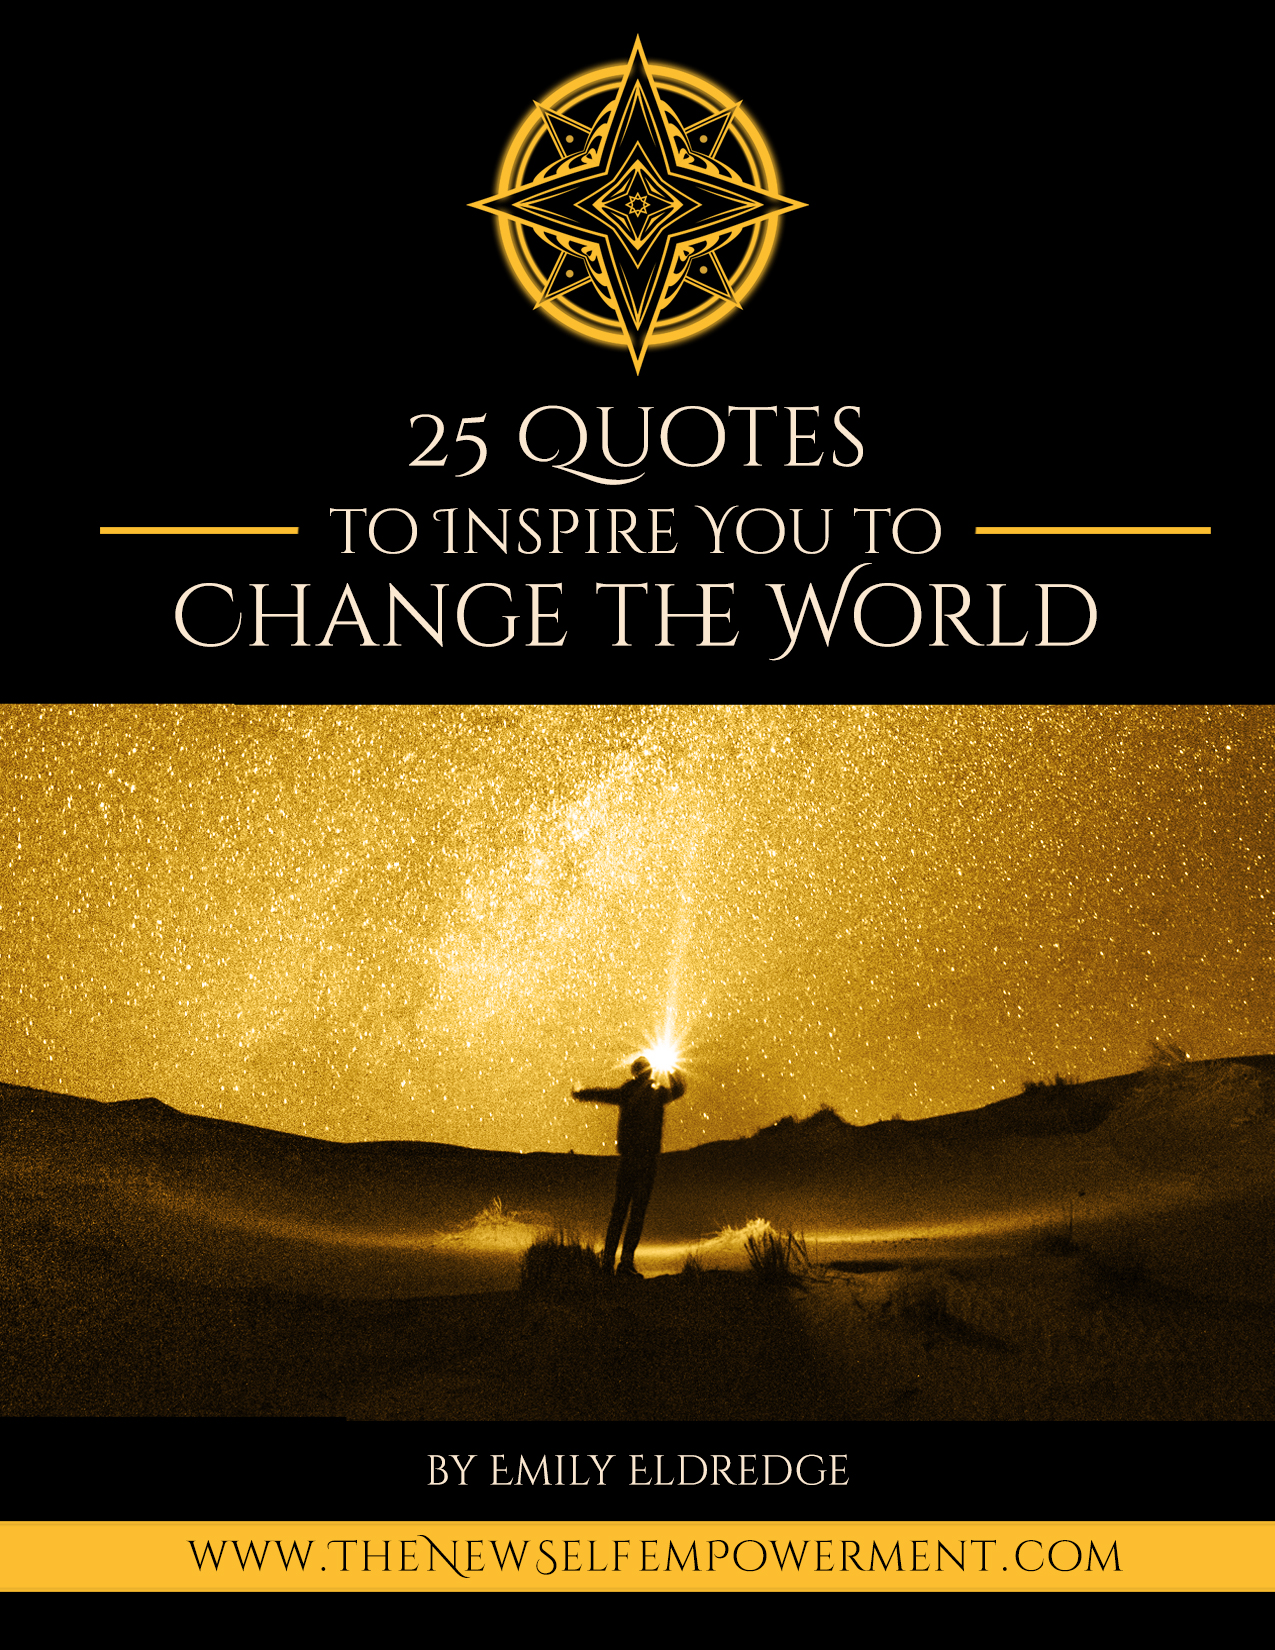 25 QUOTES BOOK - CHANGE THE WORLD Cover